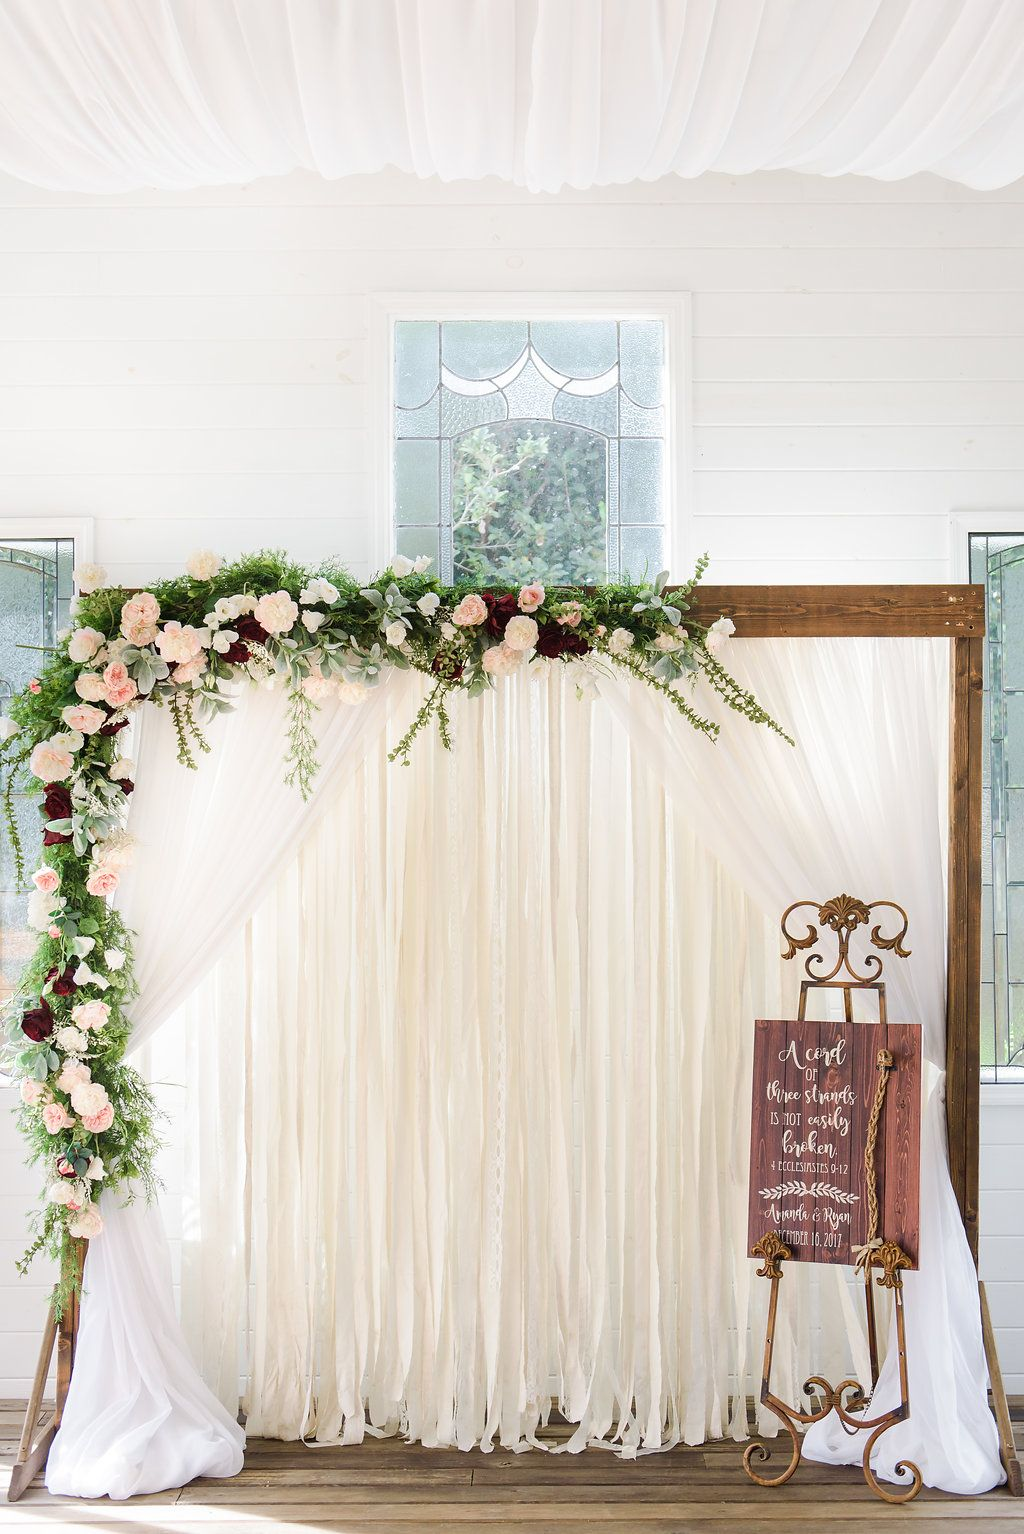 58 New Ideas For Wedding Arch Babys Breath Roses Wedding Wedding Arch Wedding Arch Flowers Navy Wedding Flowers